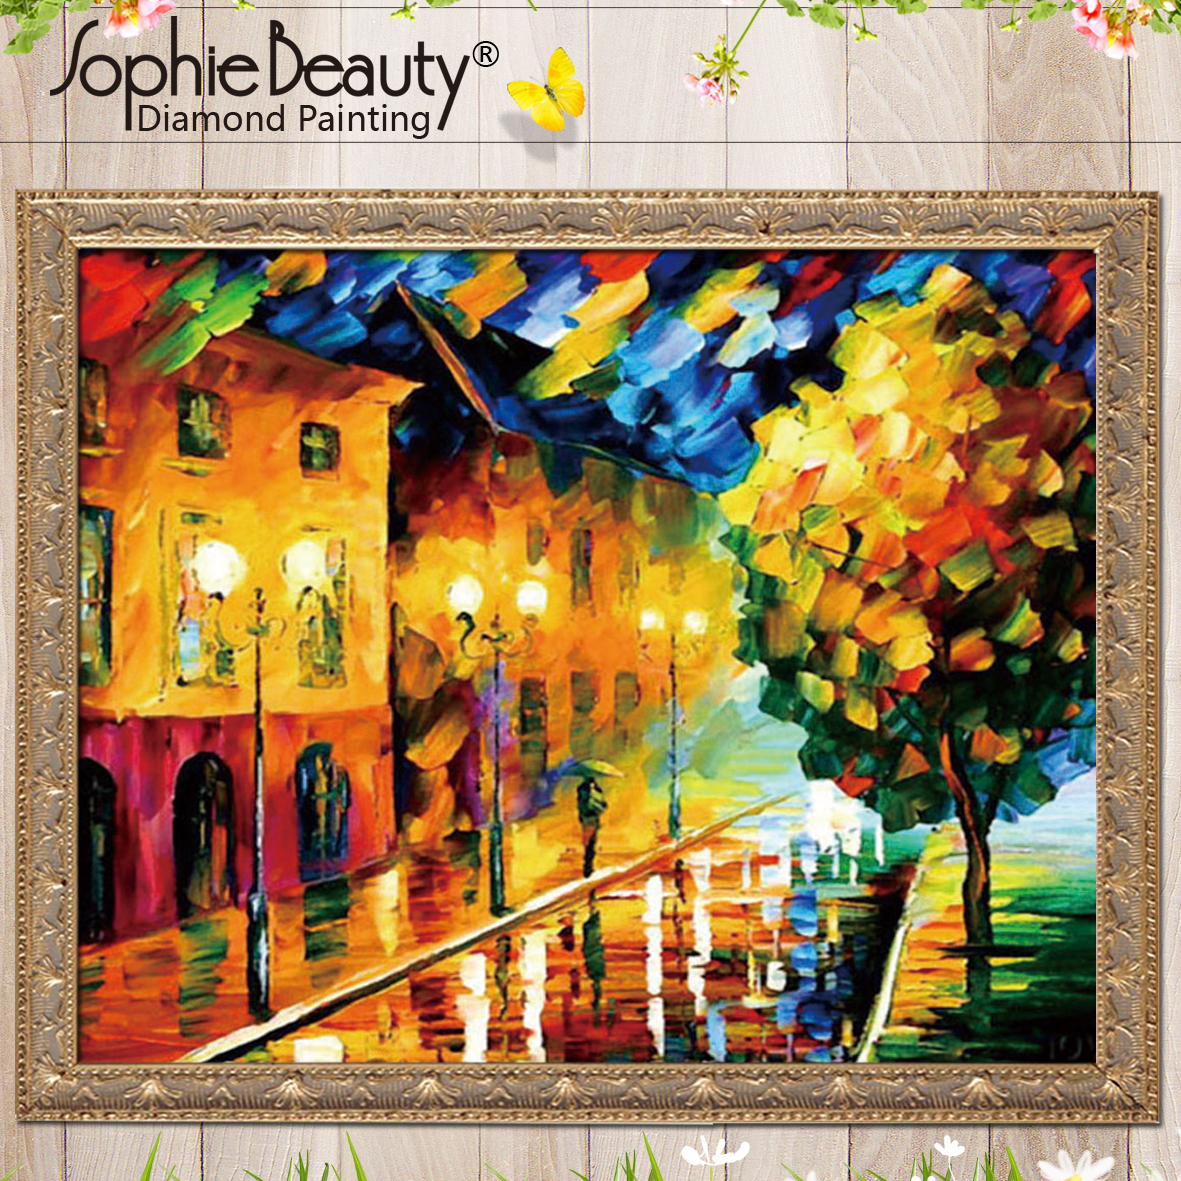 2018 Promotion Diy Diamond Painting Cross Stitch Needlework Embroidery Colorful Street Light Square Handcraft Mosaic Arts Kits